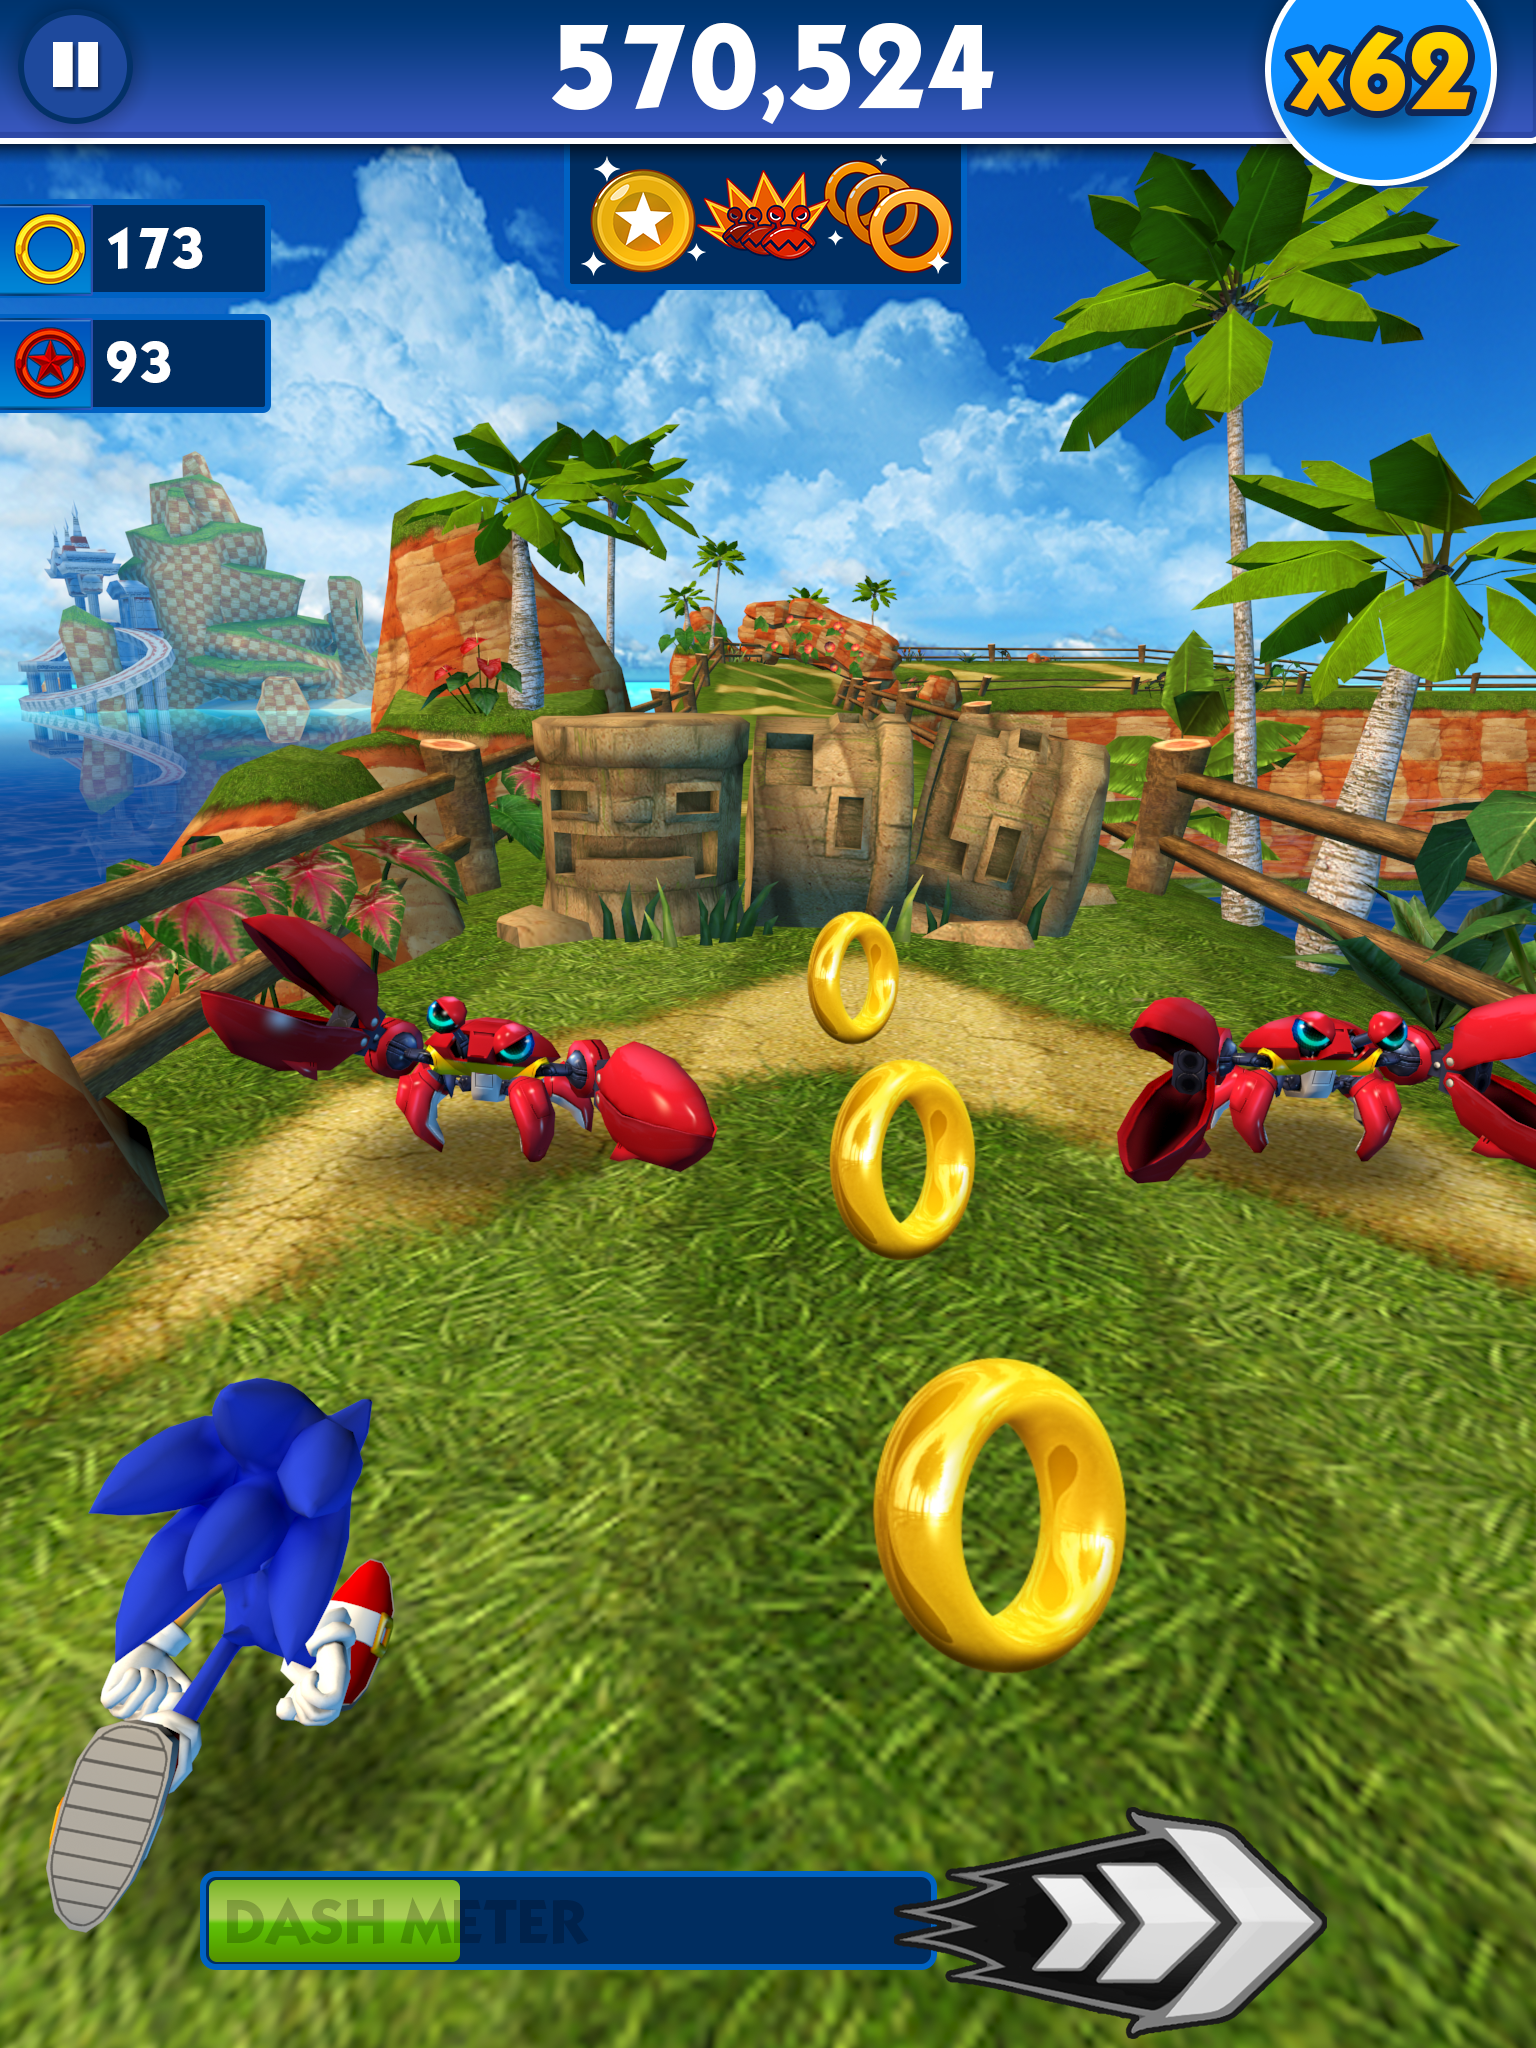 Sonic Dash screenshot #10